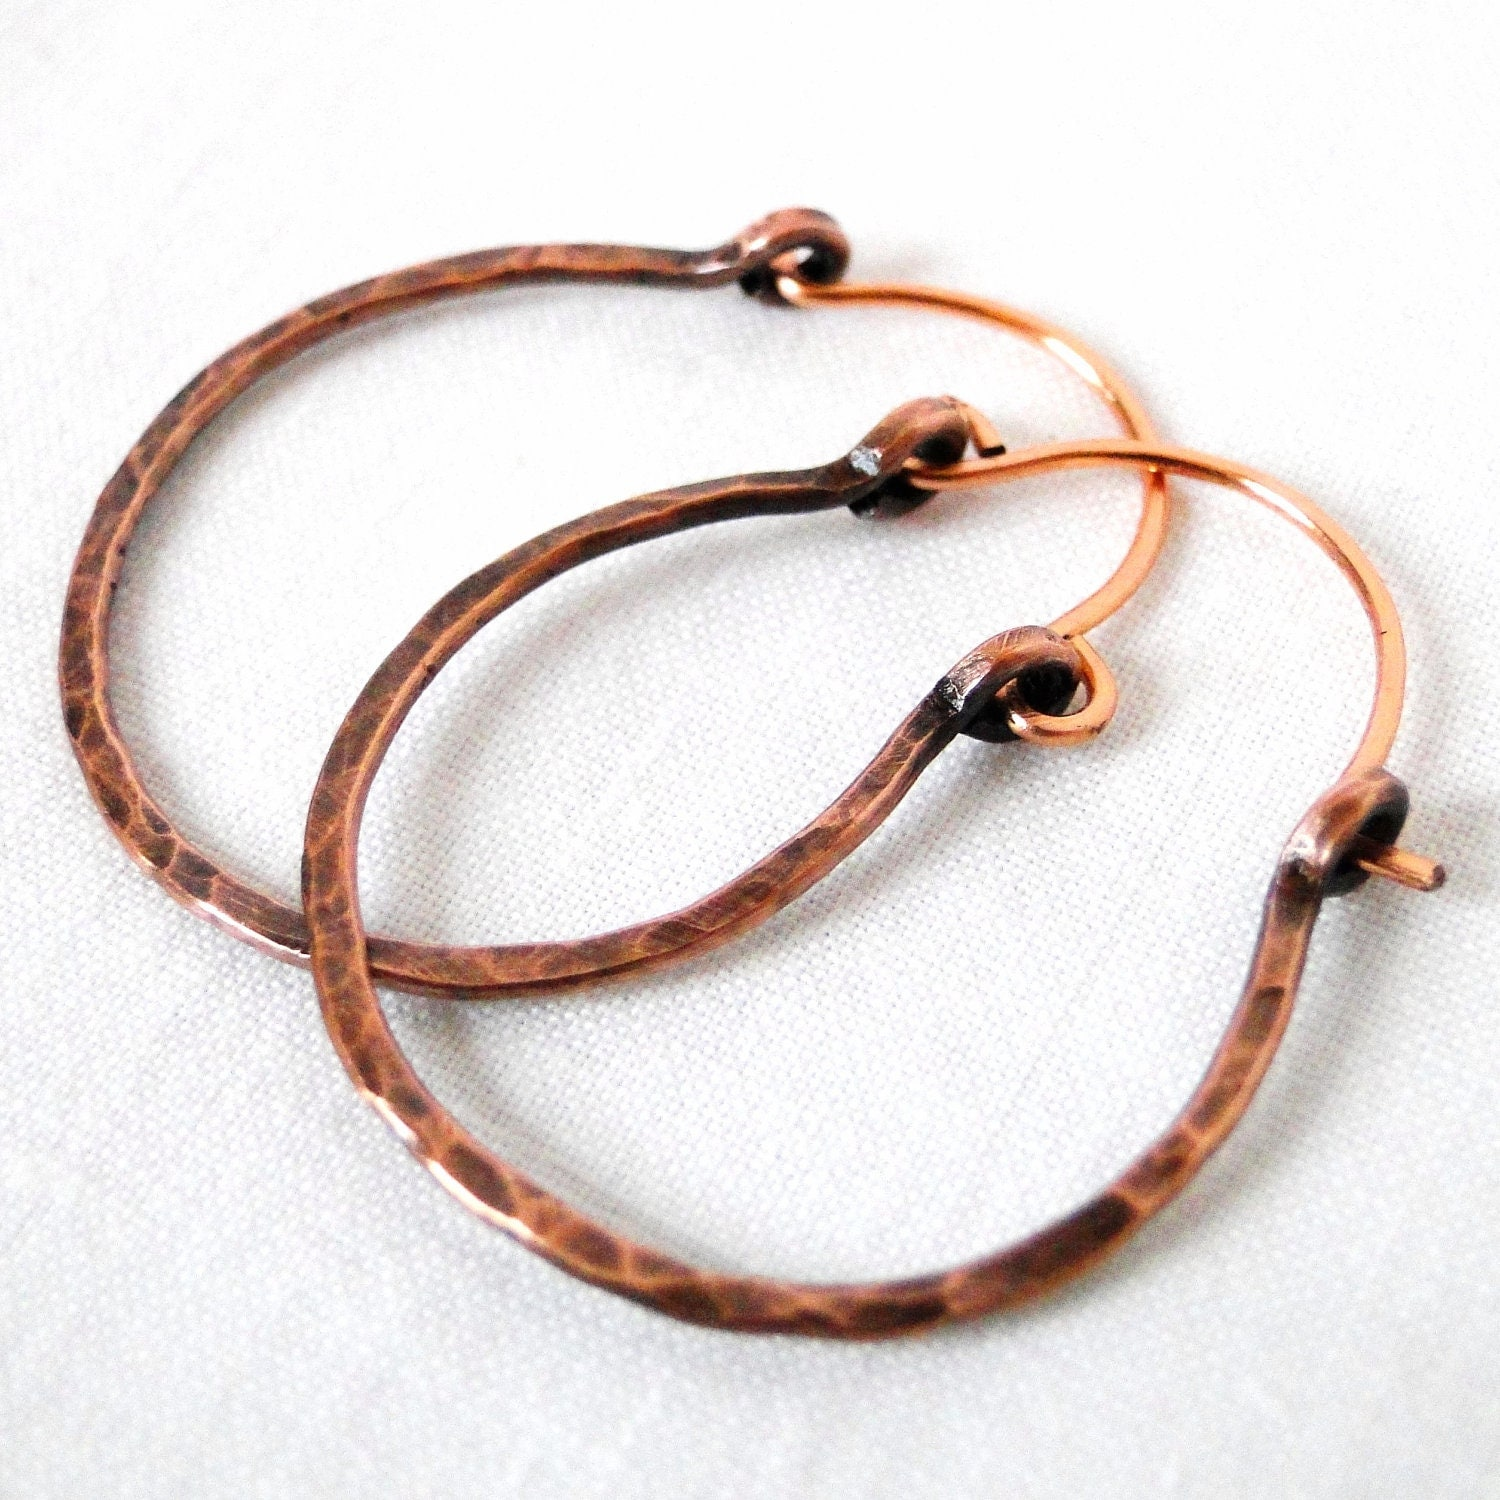 Hammered Copper Wire Jewelry Hoop Earrings Medium Hoop